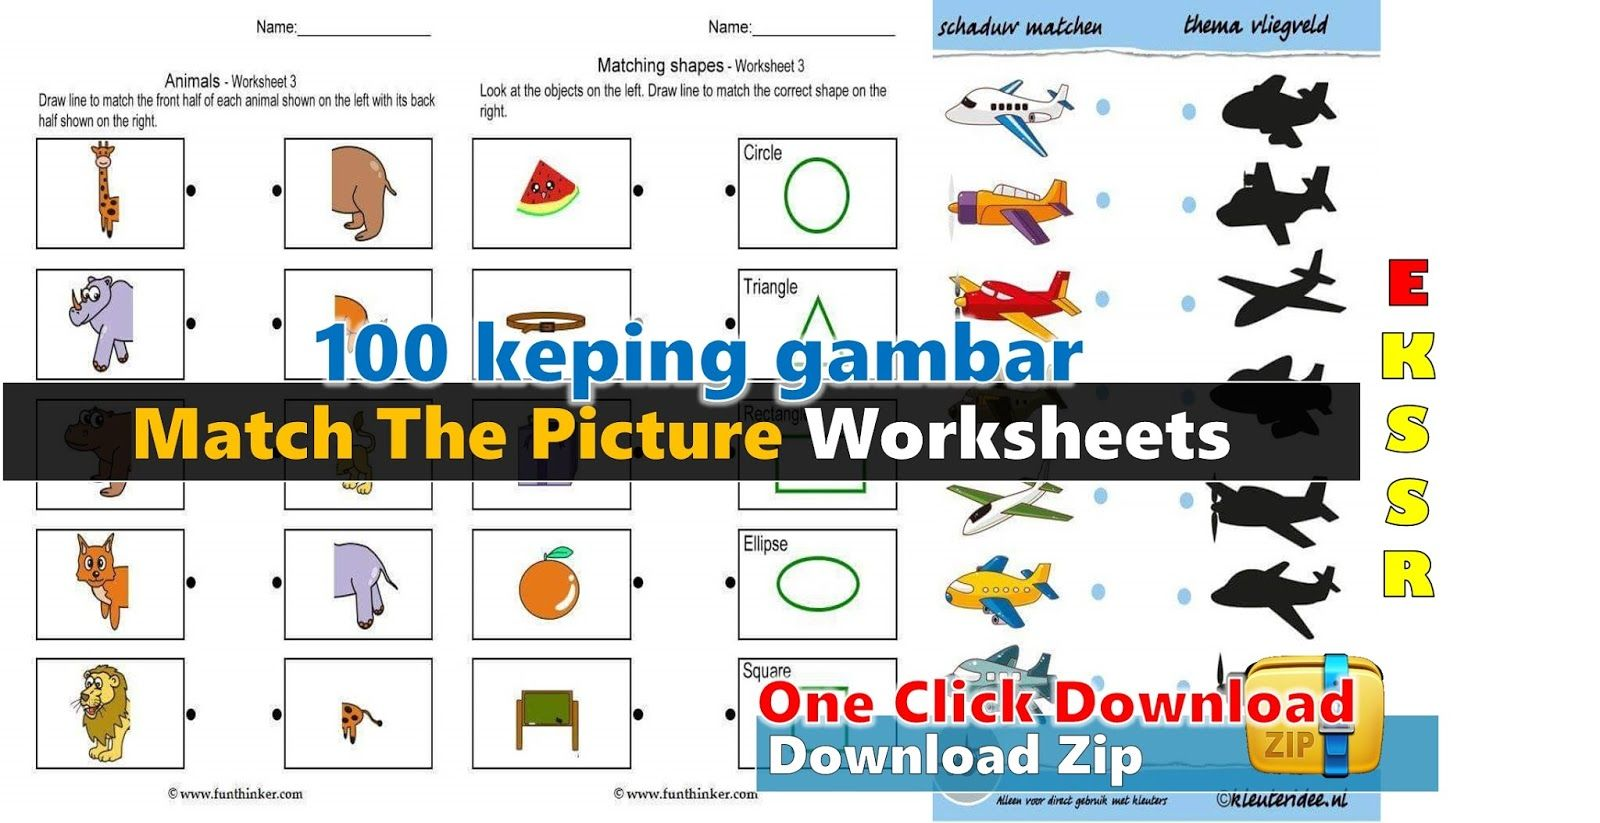 Match The Picture Worksheets